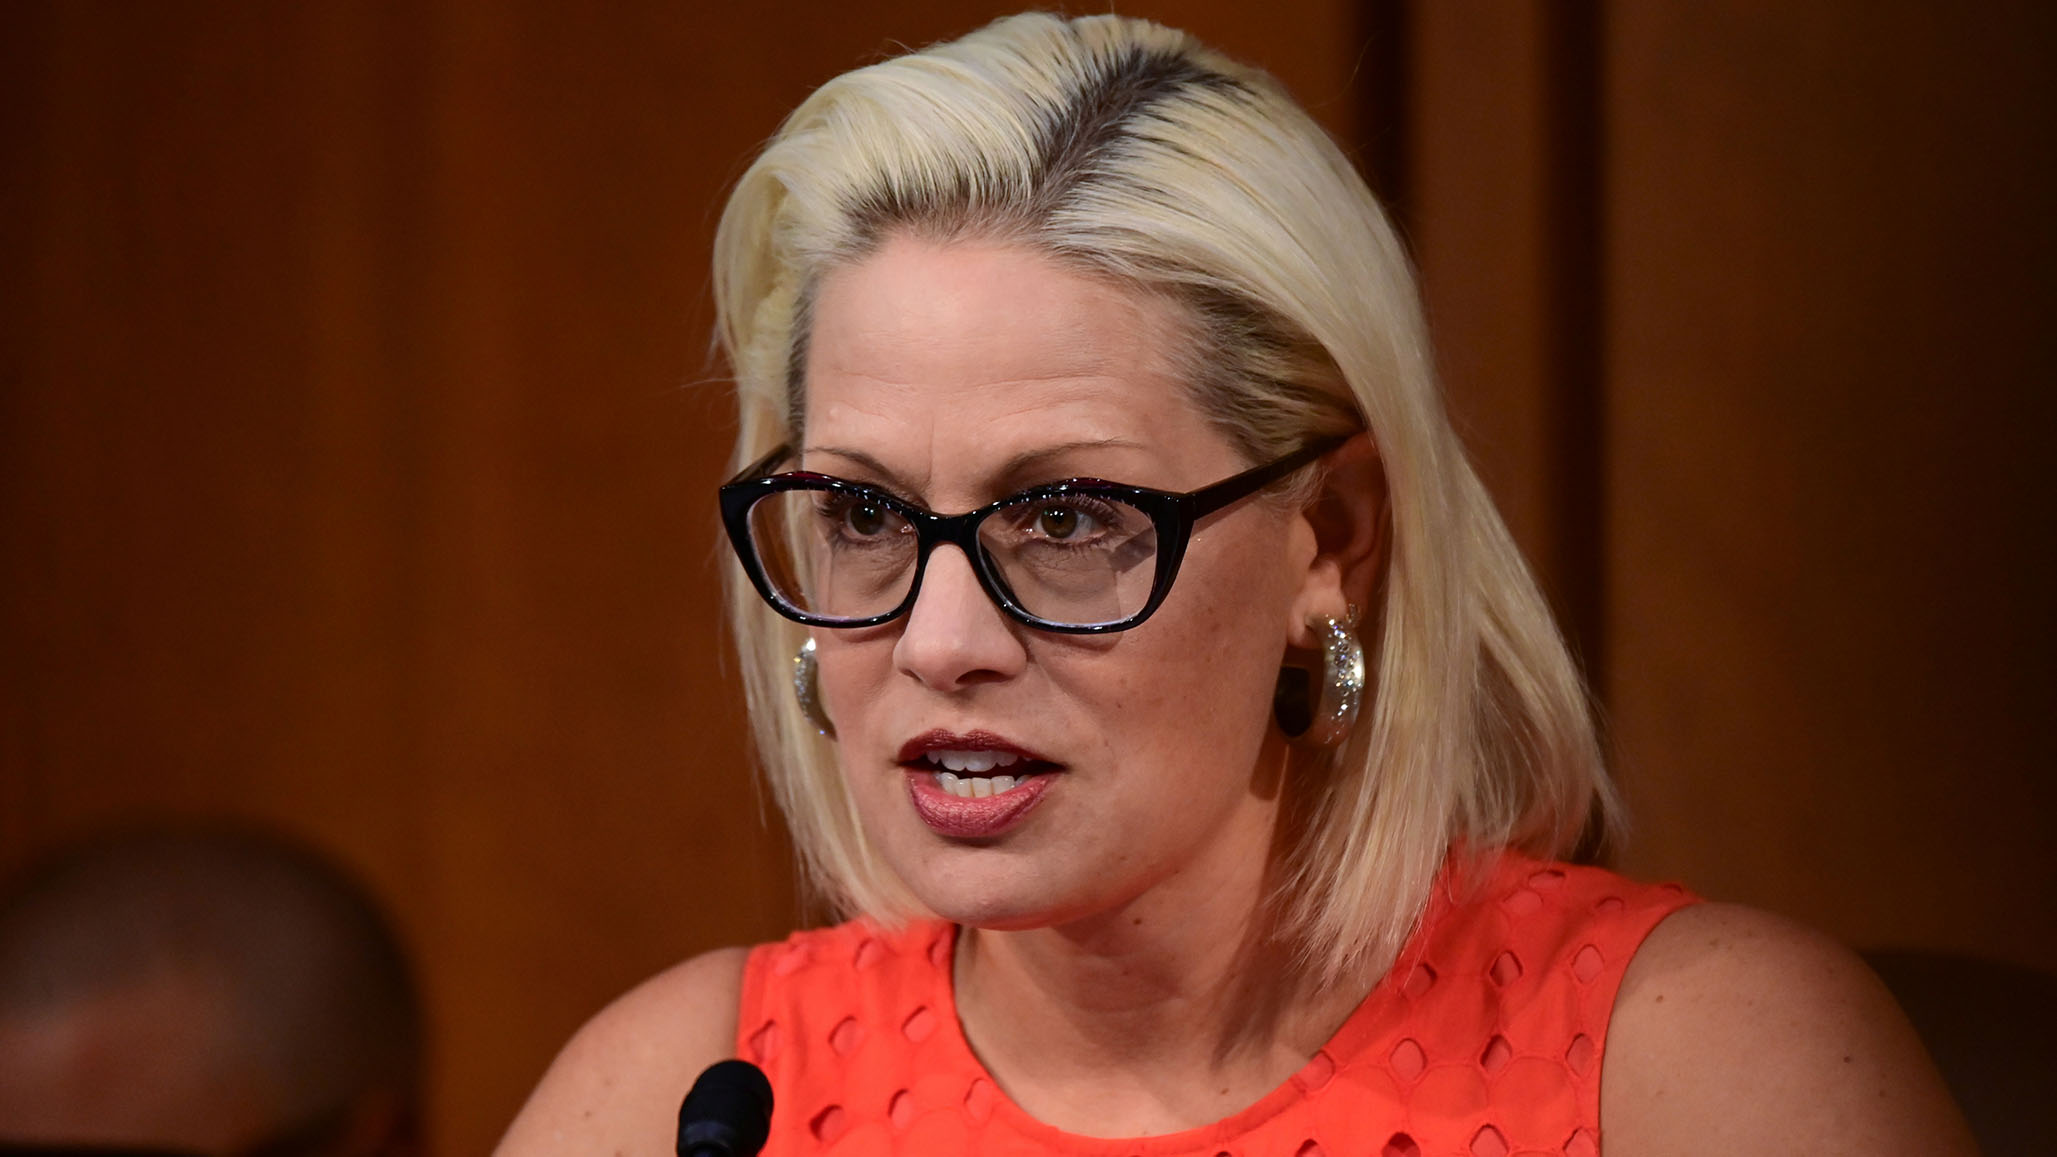 Reconciliation Package: Activists Follow Kyrsten Sinema into Bathroom, Harass Her over Opposition to Package